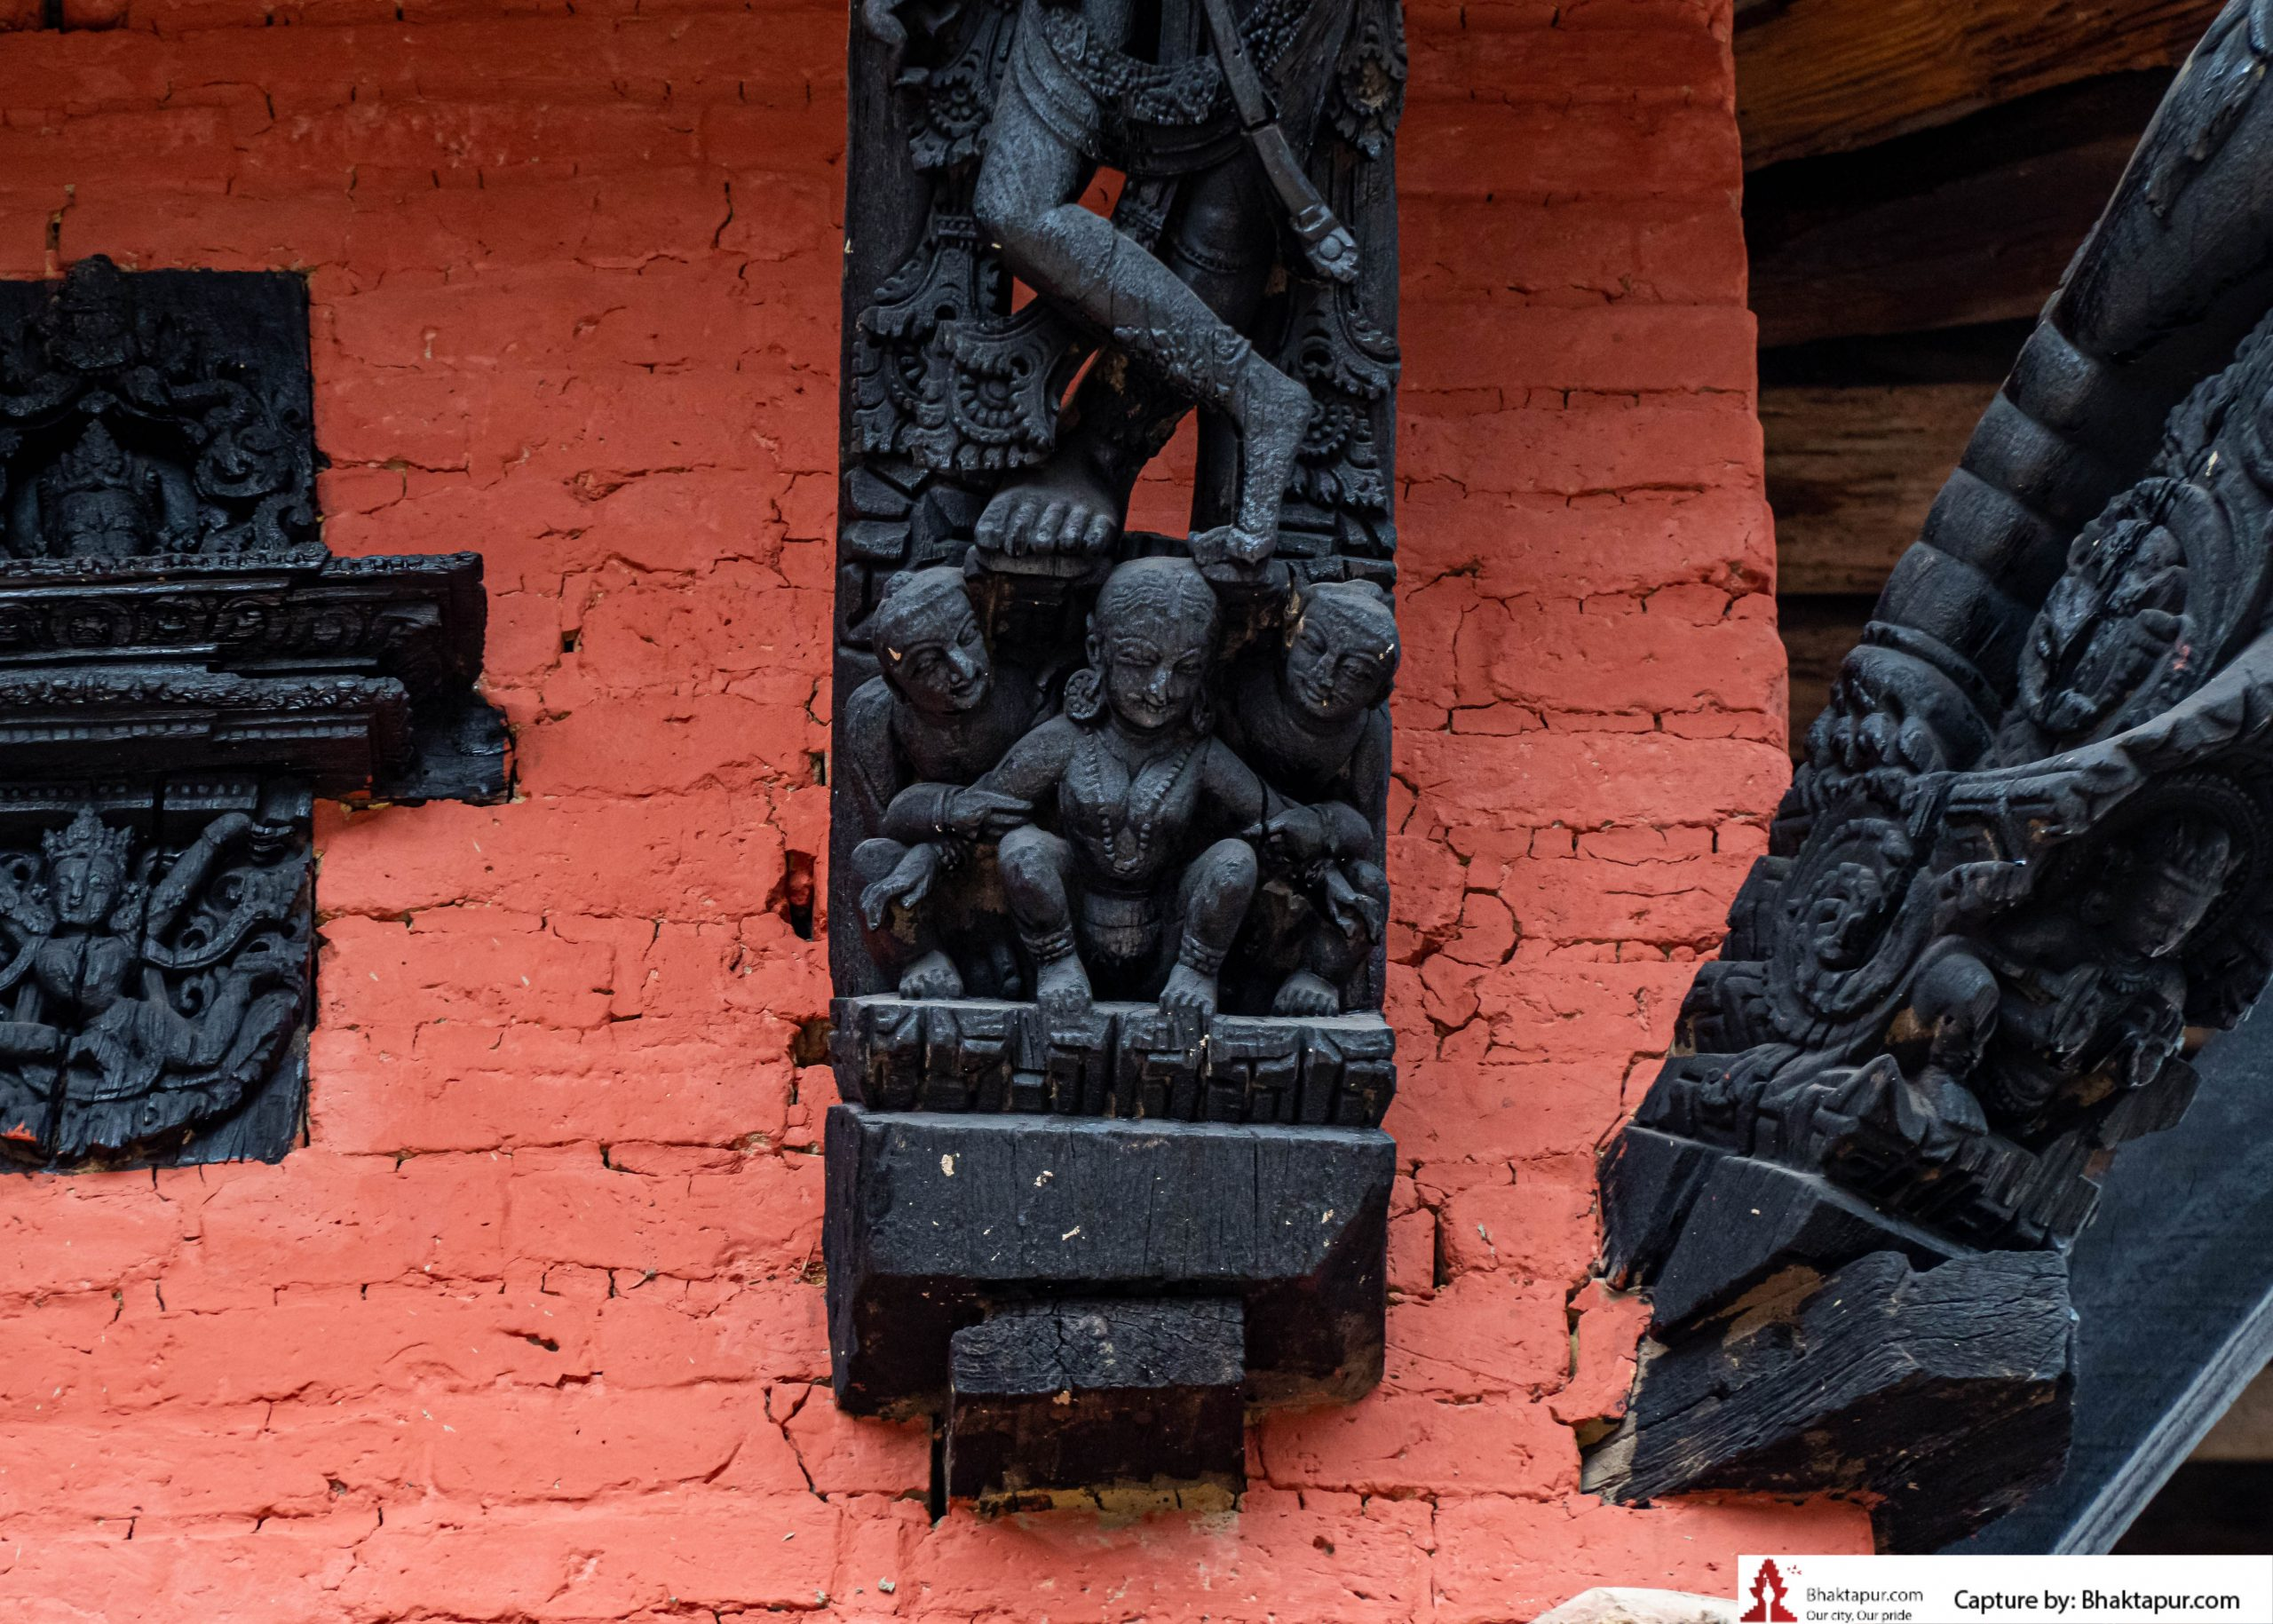 https://www.bhaktapur.com/wp-content/uploads/2021/08/erotic-carving-80-of-137-scaled.jpg